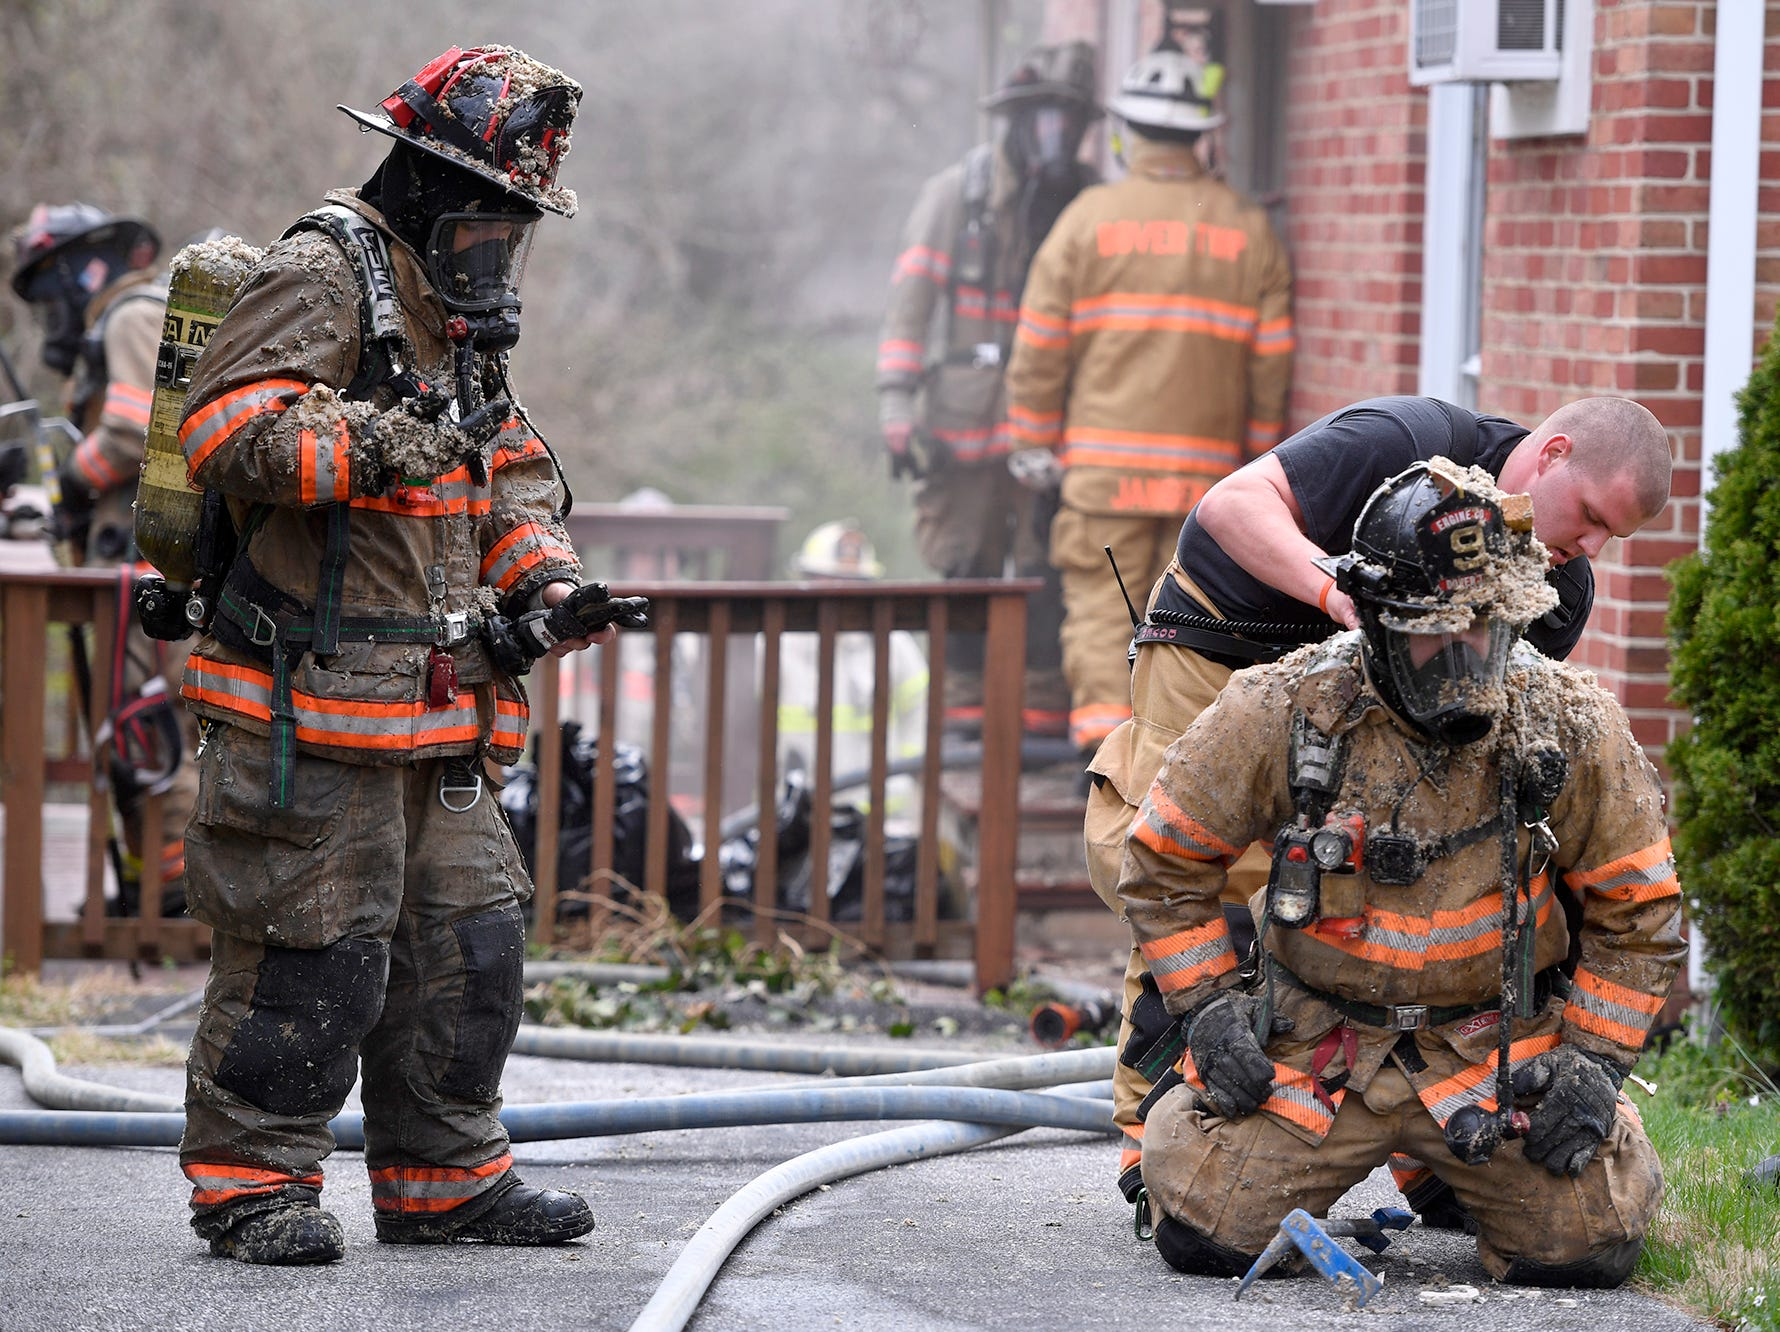 Firefighters battle a blaze in a vacant single family home in the 200 block of North Williams Street in West Manchester Township, Monday, April 15, 2019.